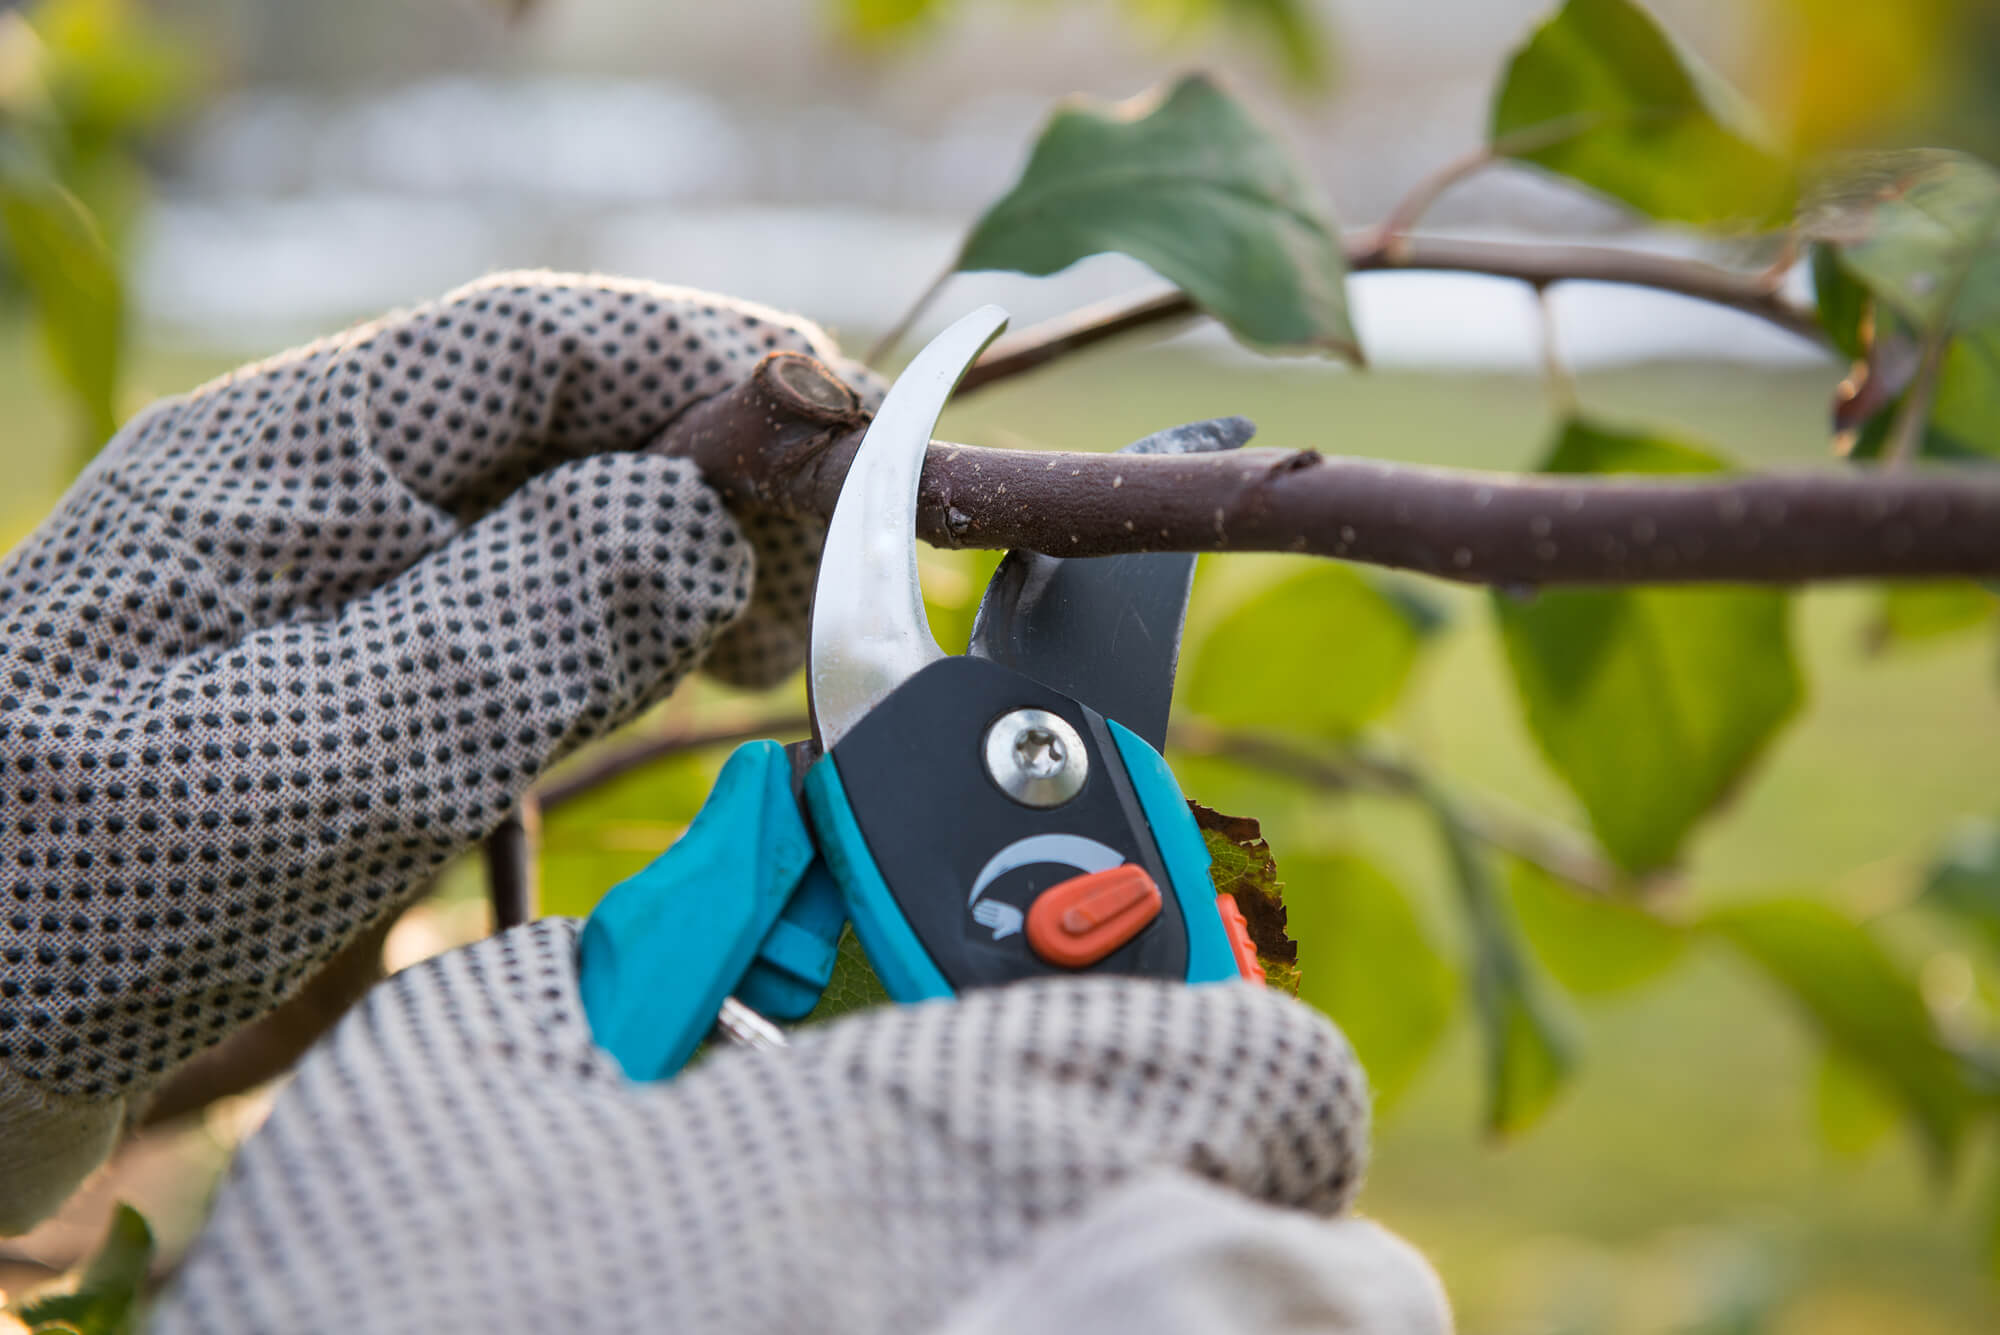 The Basics Of Pruning Shears